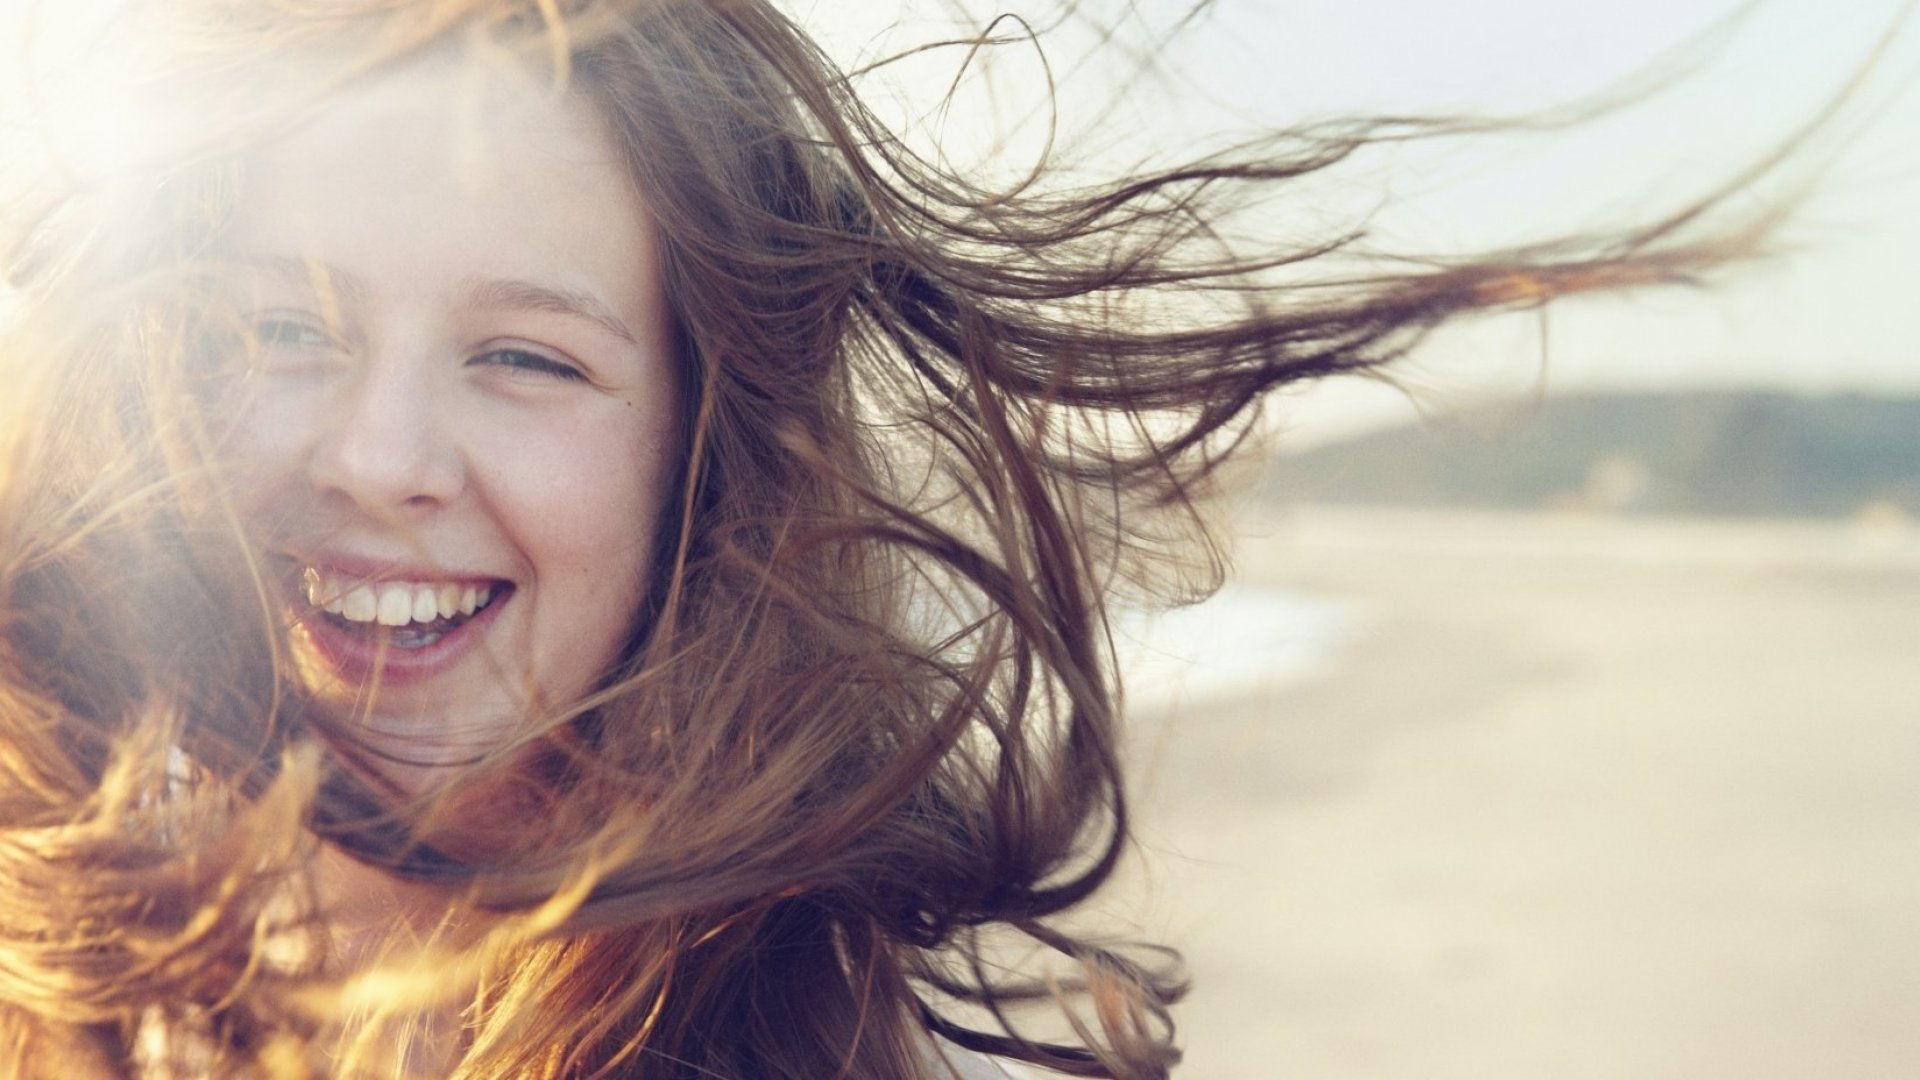 7 Small Changes That Will Make You Happier and More Successful